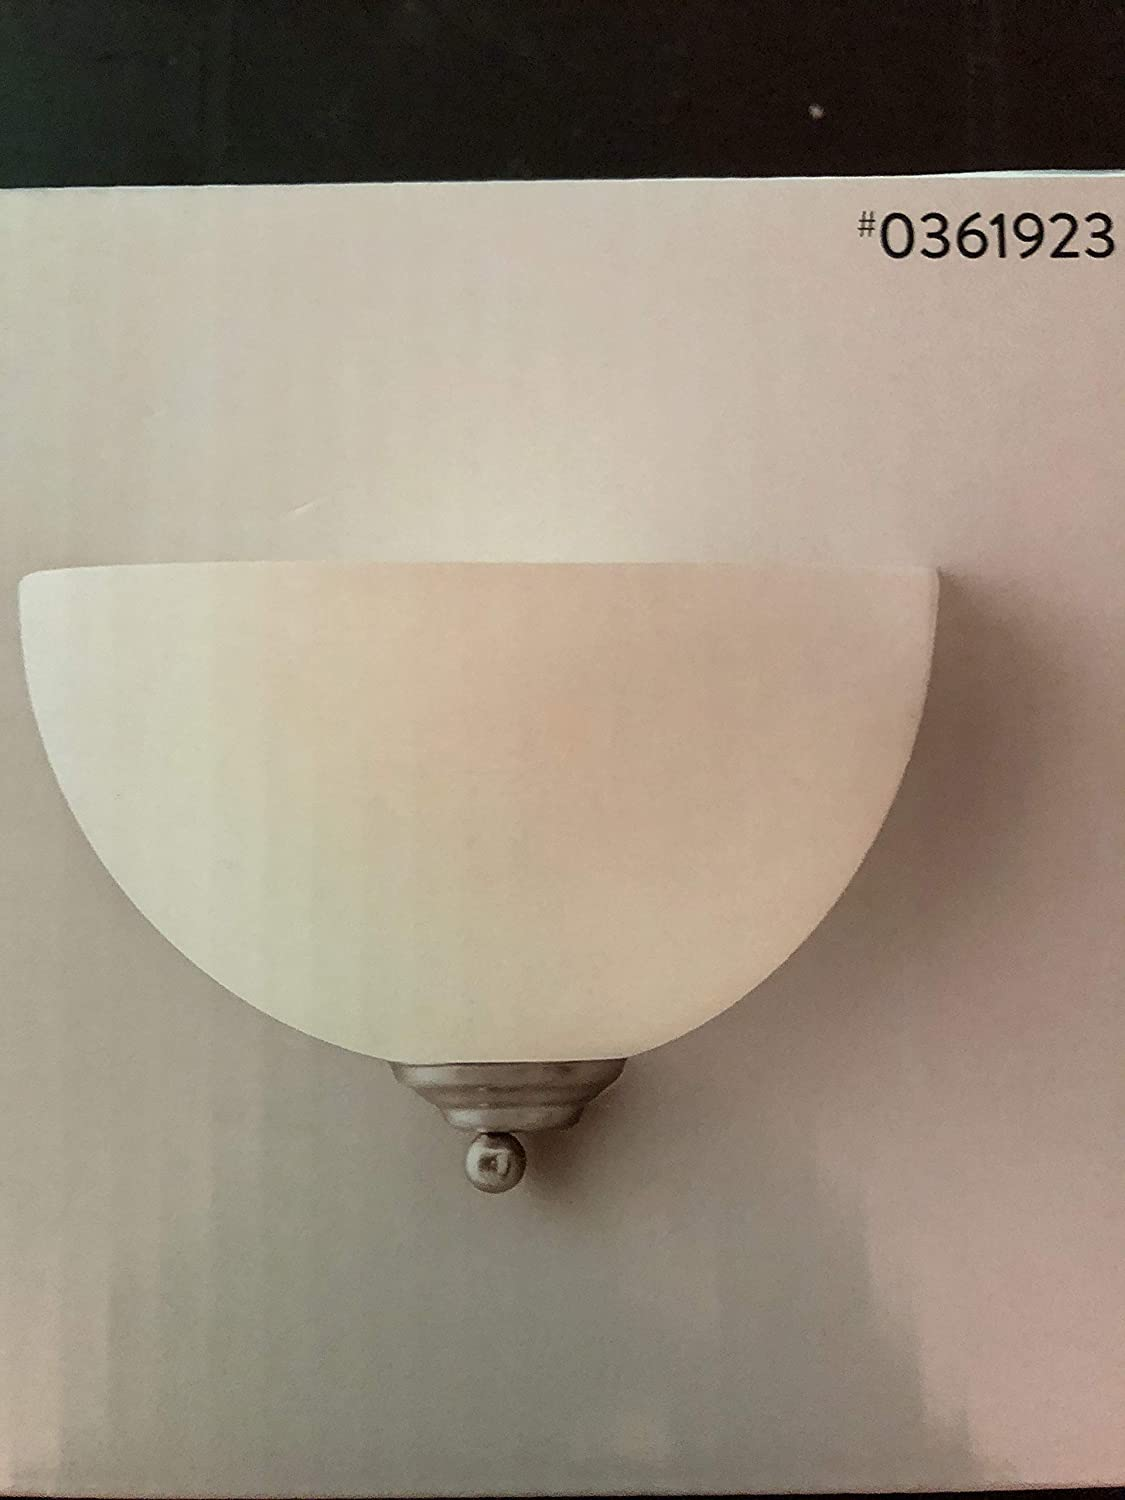 Brushed Nickel Wall Sconce 10  Inch W 1-Light Living Room Bedroom Fixture New